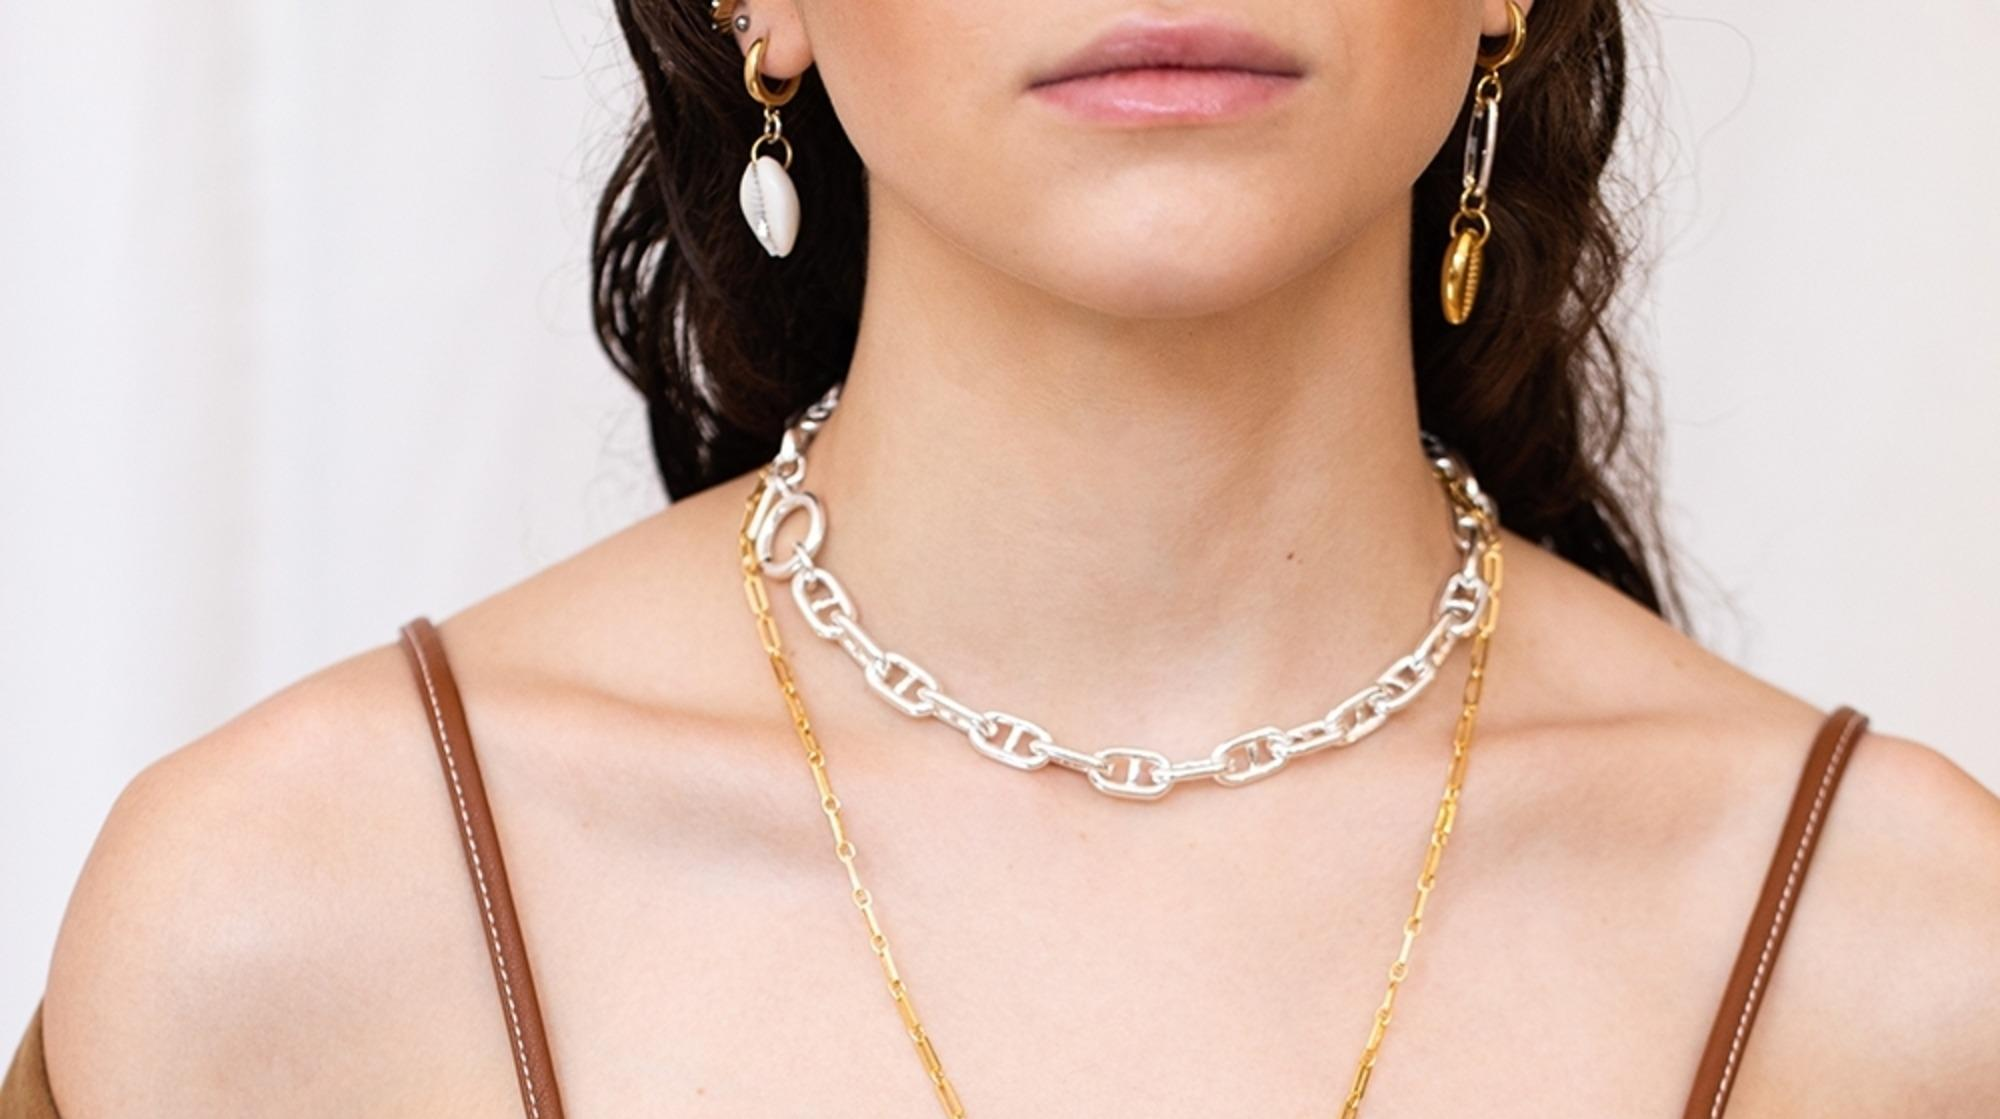 WALD Berlin sells fair trade jewelry from Germany to empower women